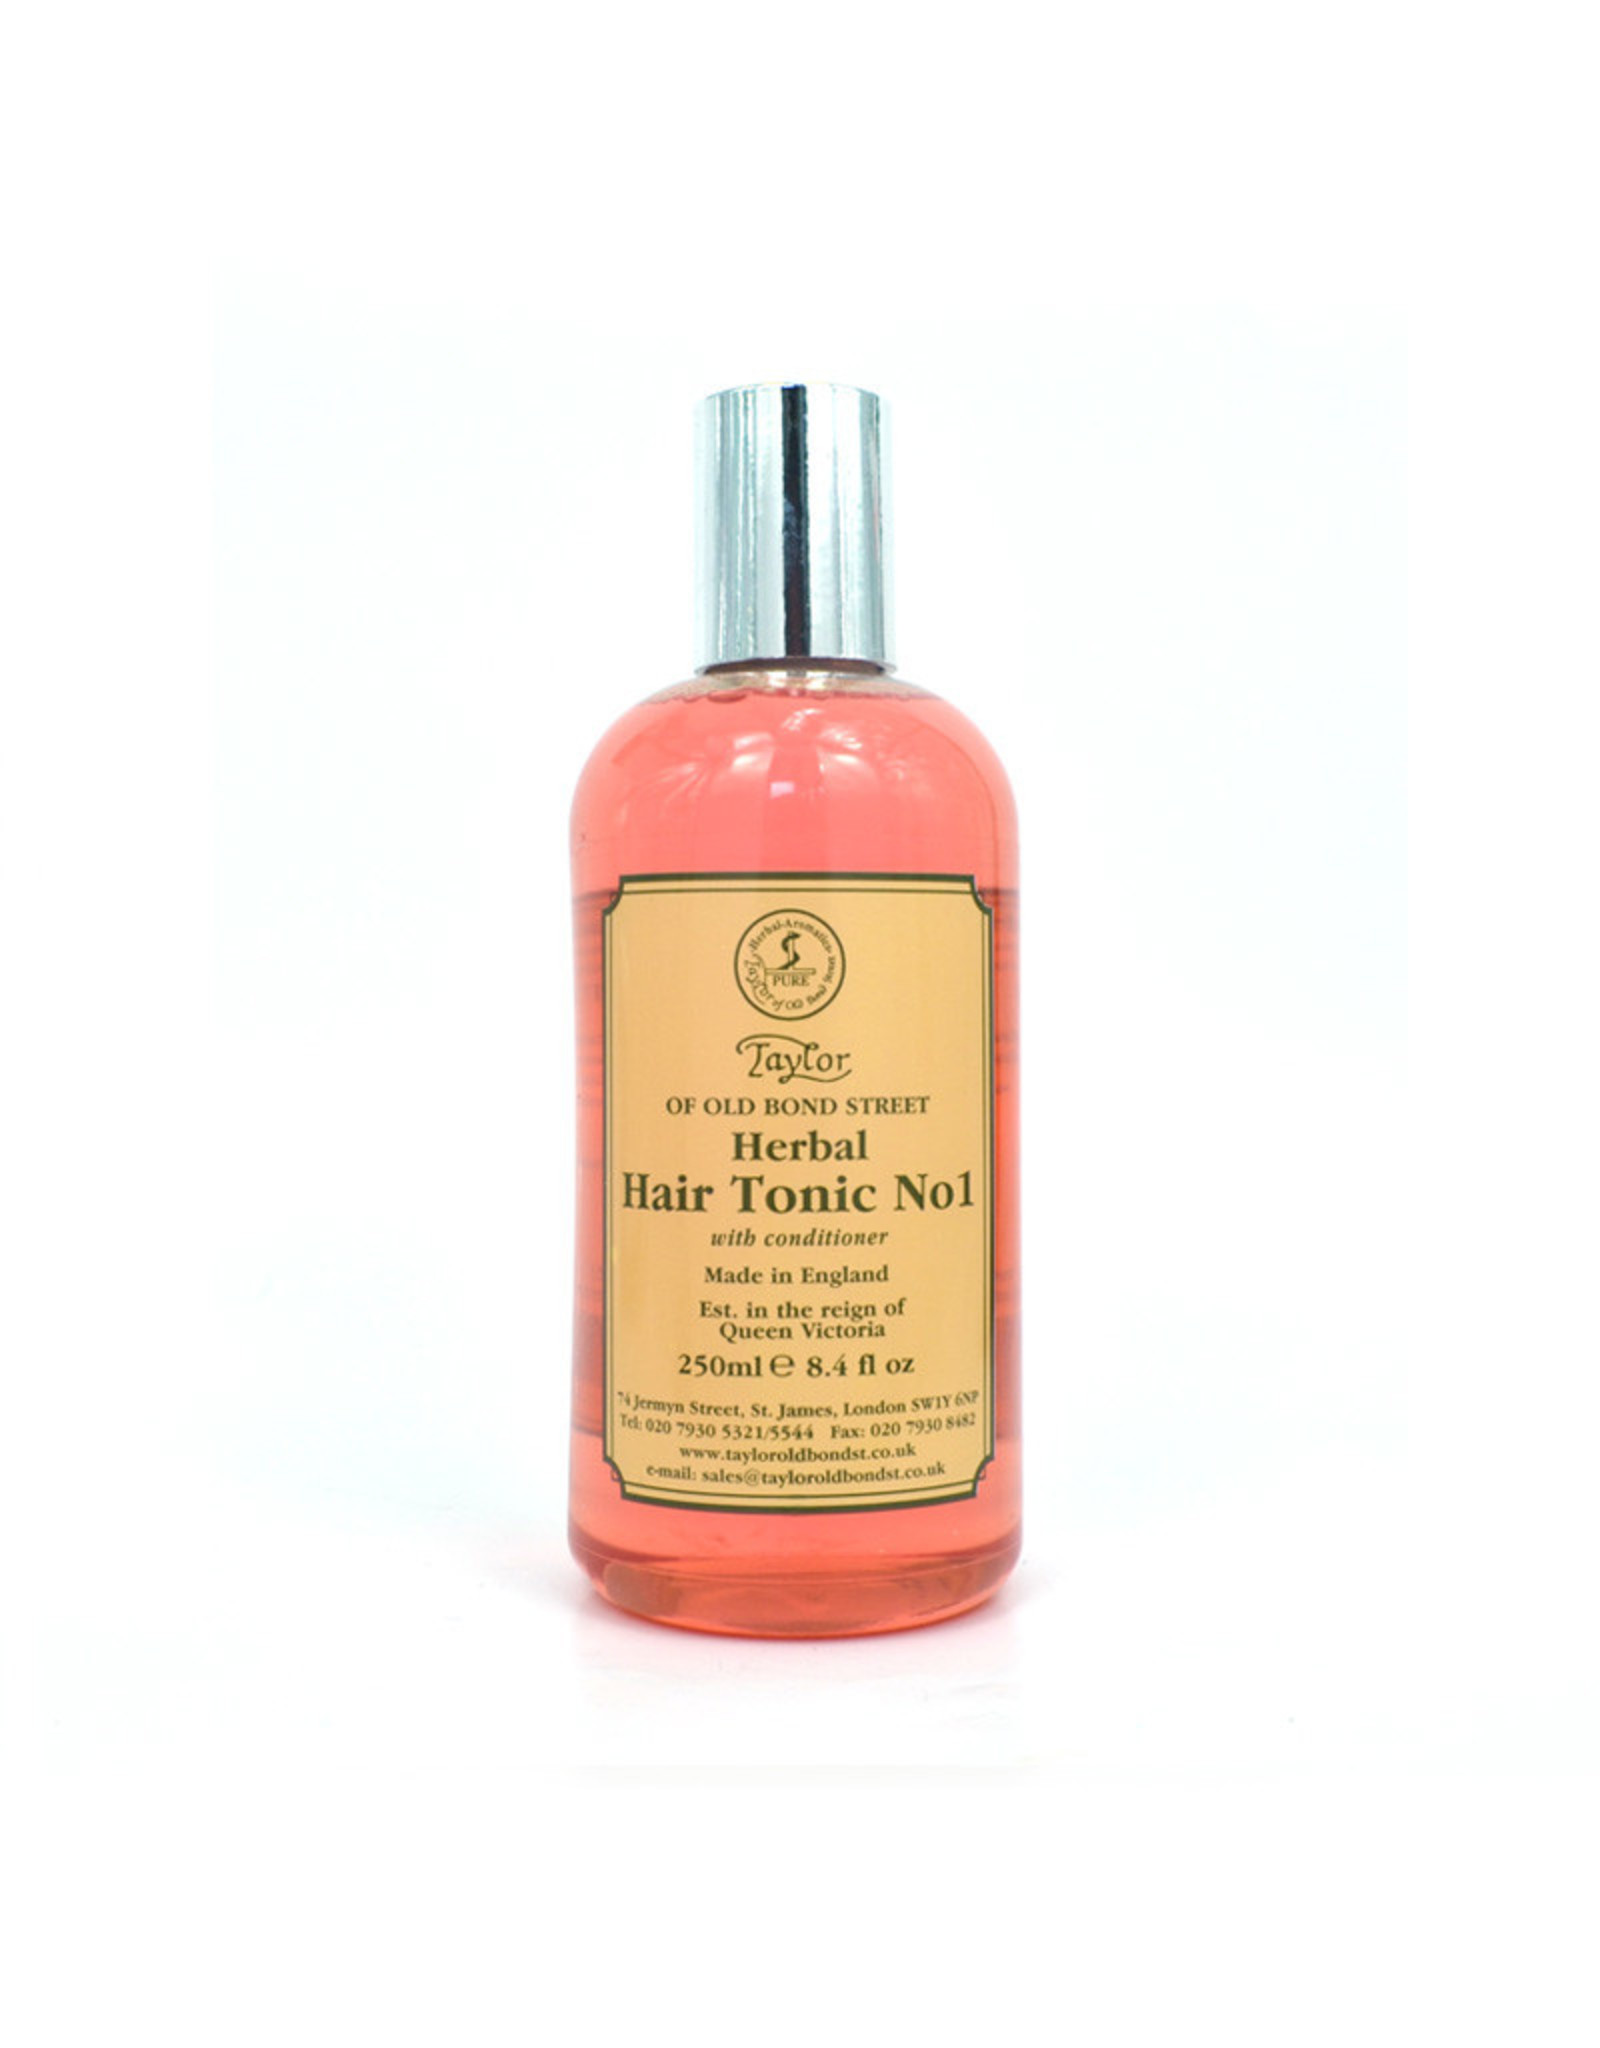 Taylor of Old Bond Street No.1 Herbal Hair Tonic with Conditioner 250ml